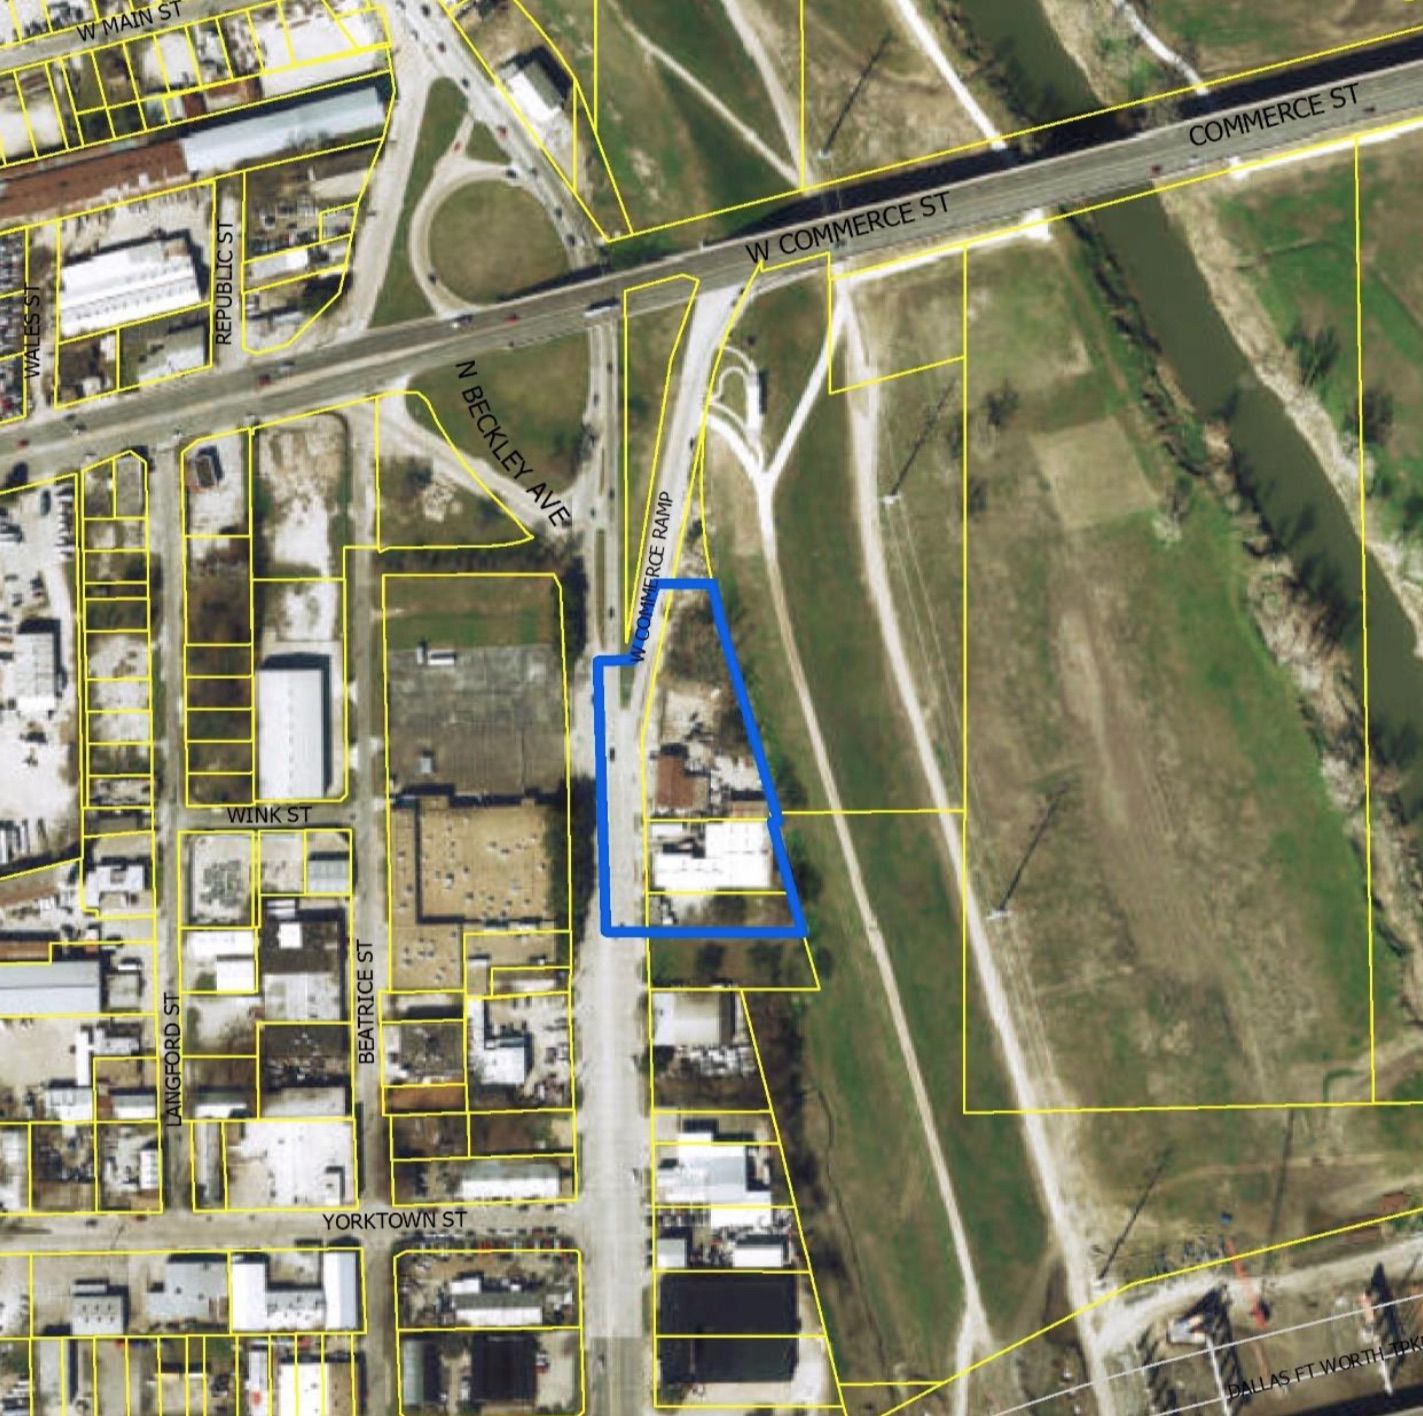 The 2-acre site is on Beckley Avenue just south of Commerce Street.